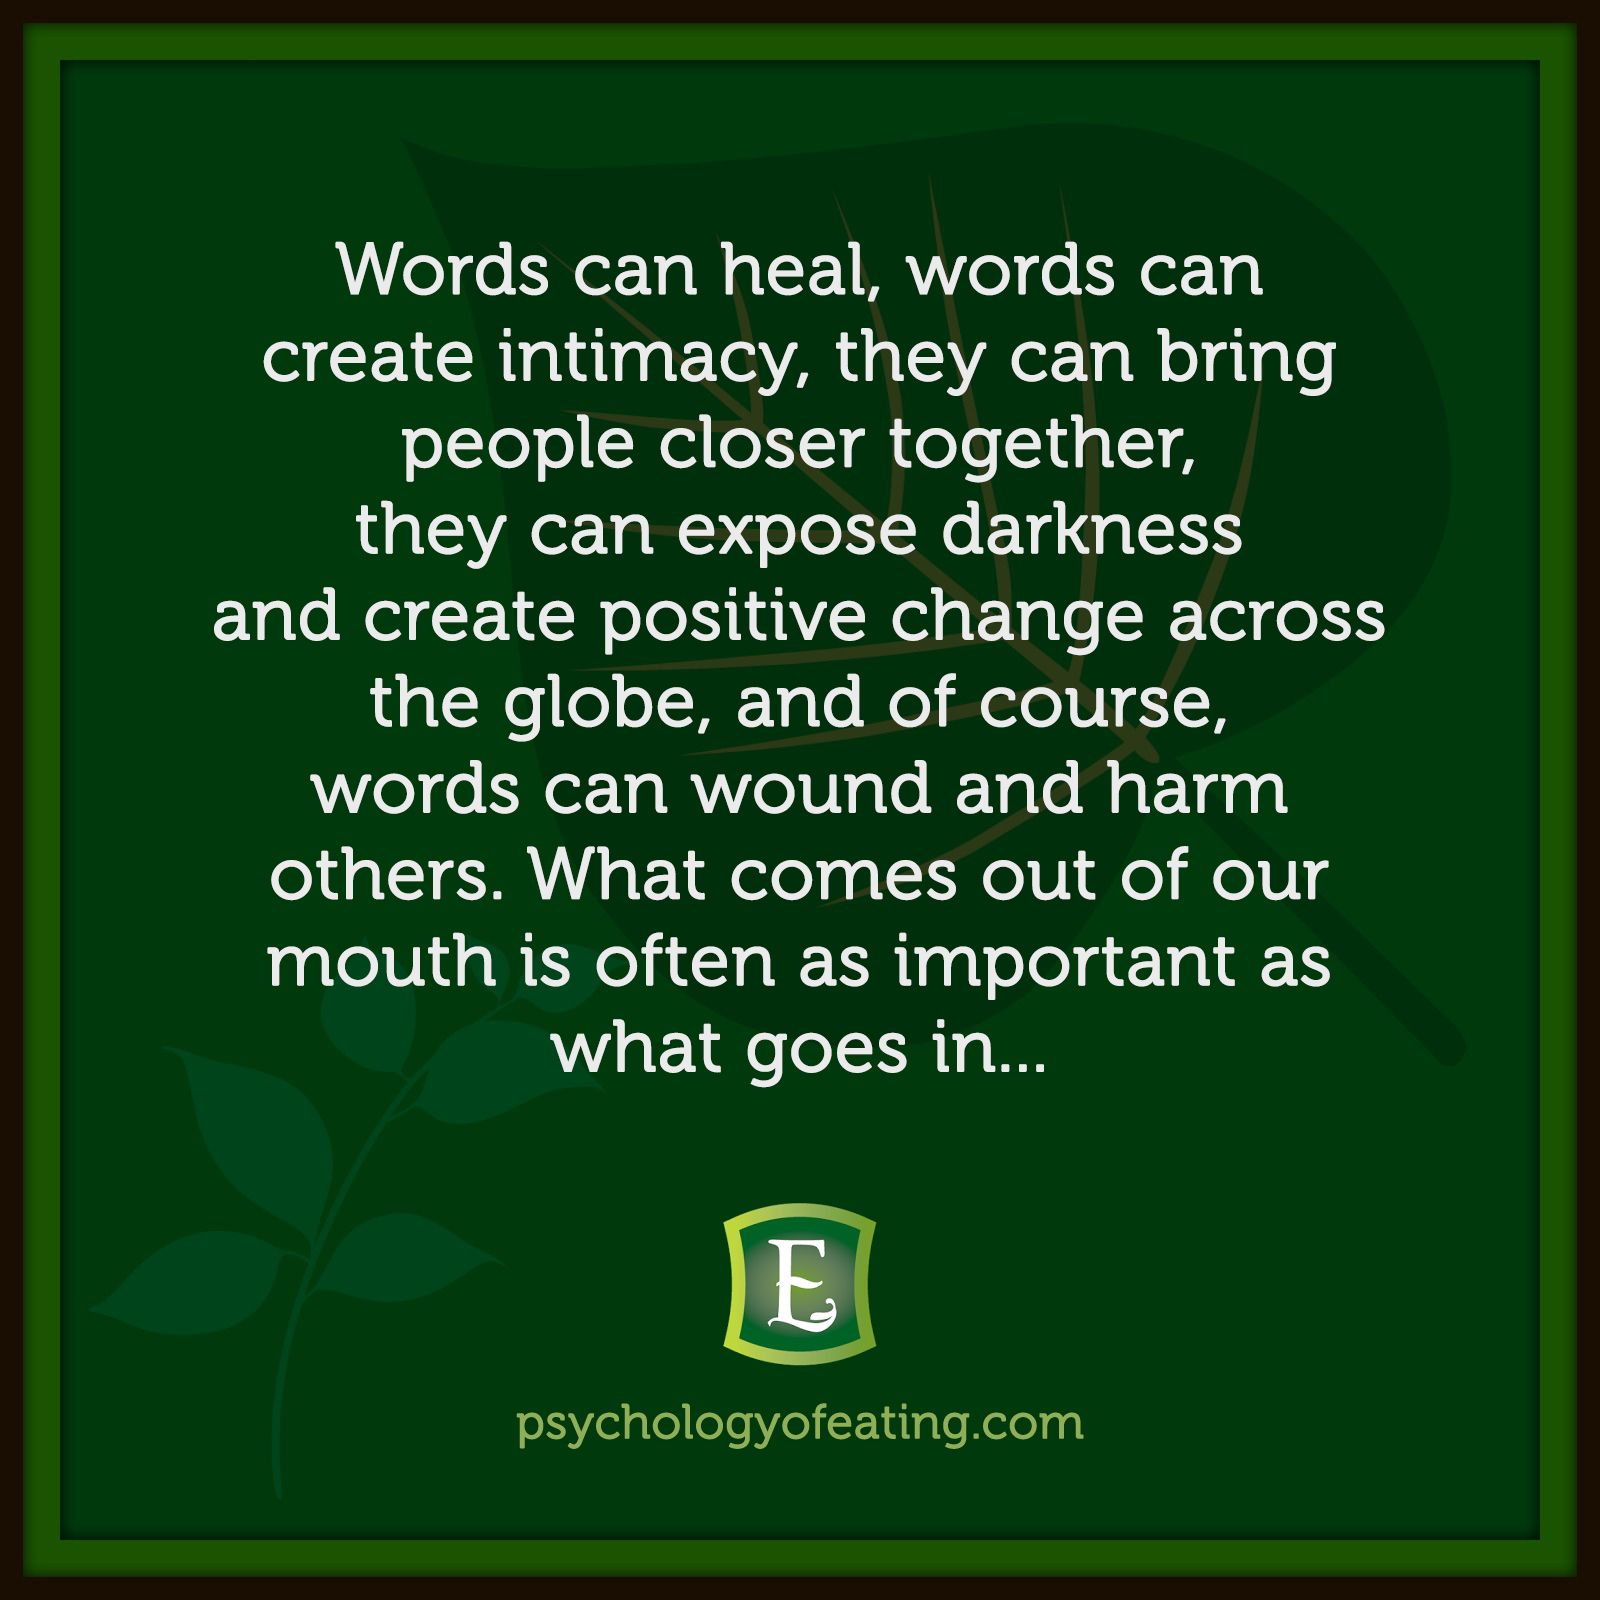 Words can heal, words can create intimacy, they can bring people closer together, they can expose darkness and create positive change across the globe, and of course, words can wound and harm others. What comes out of our mouth is often as important as what goes in…  Marc David #health #nutrition #eatingpsychology #IPE